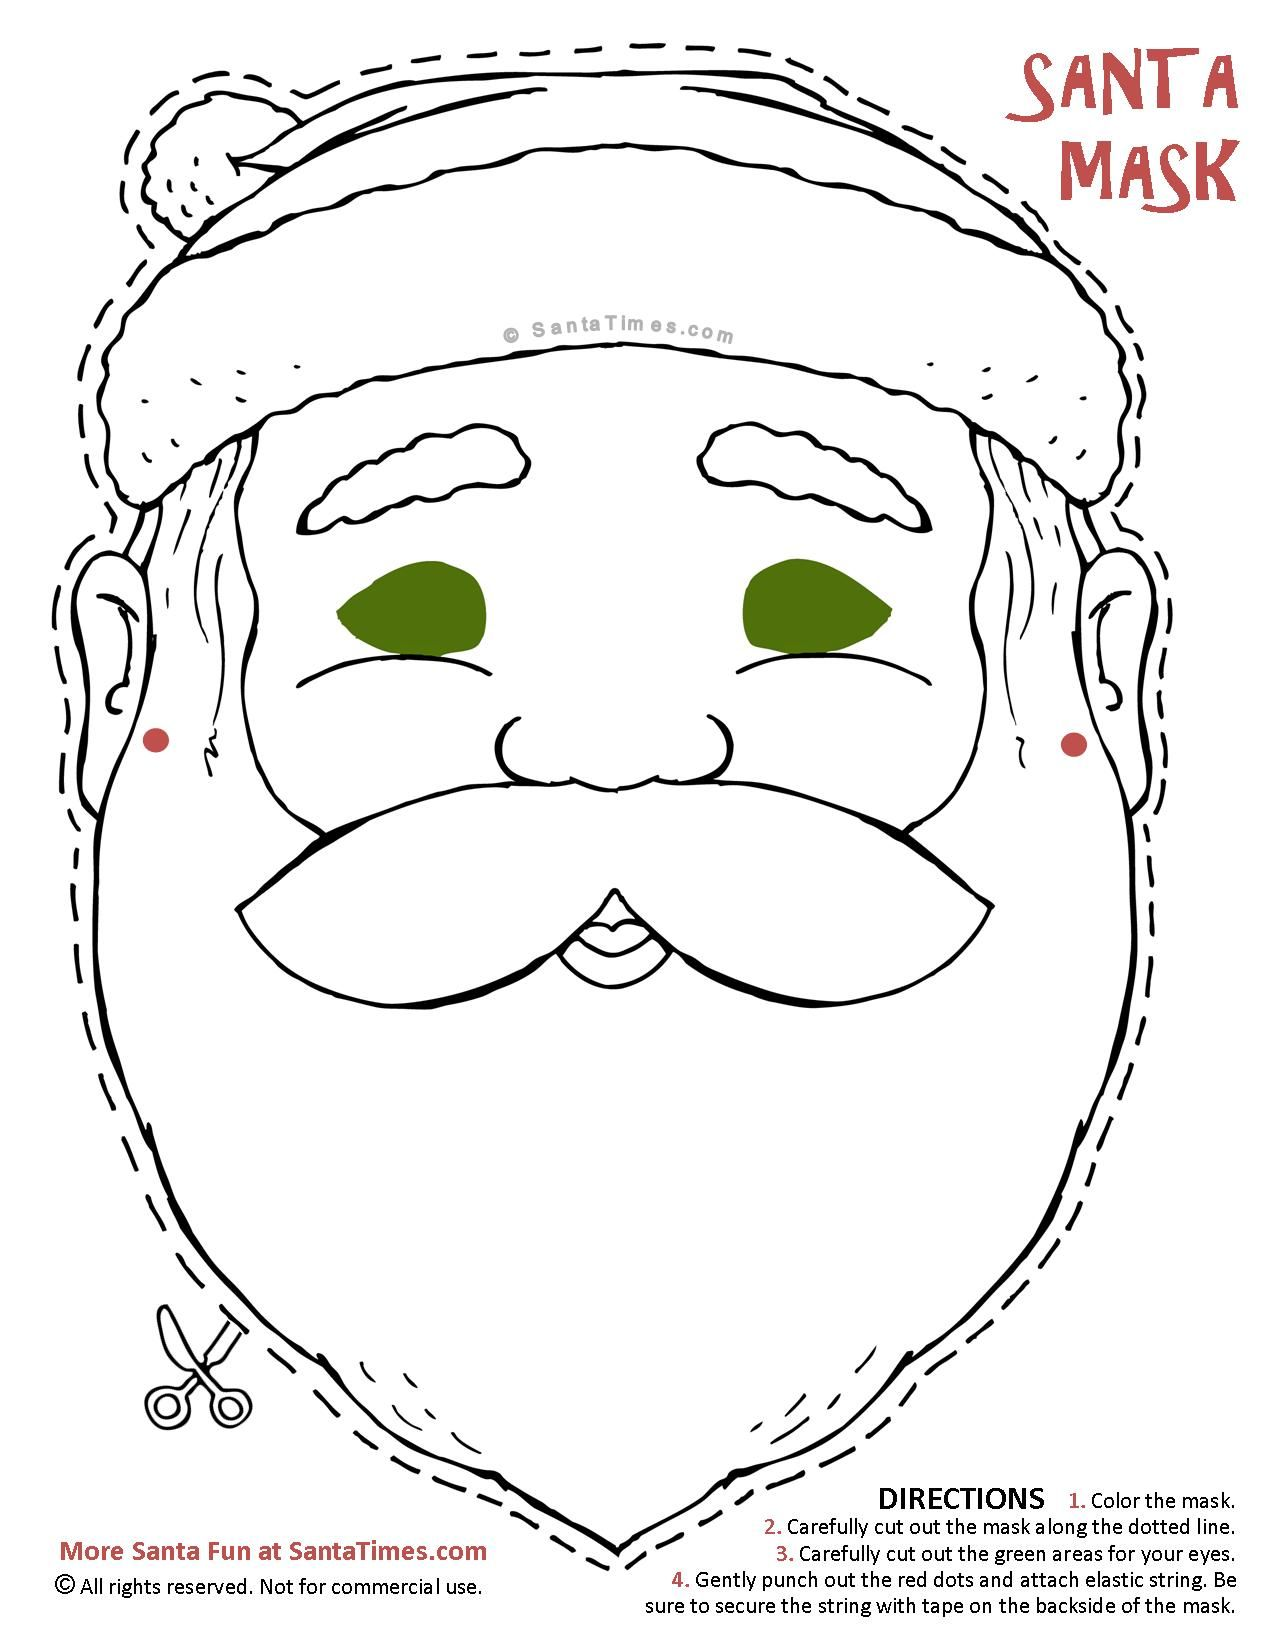 Uncategorized Cut Out Mask heres a jolly santa mask to cut out and color find more fun christmas printables